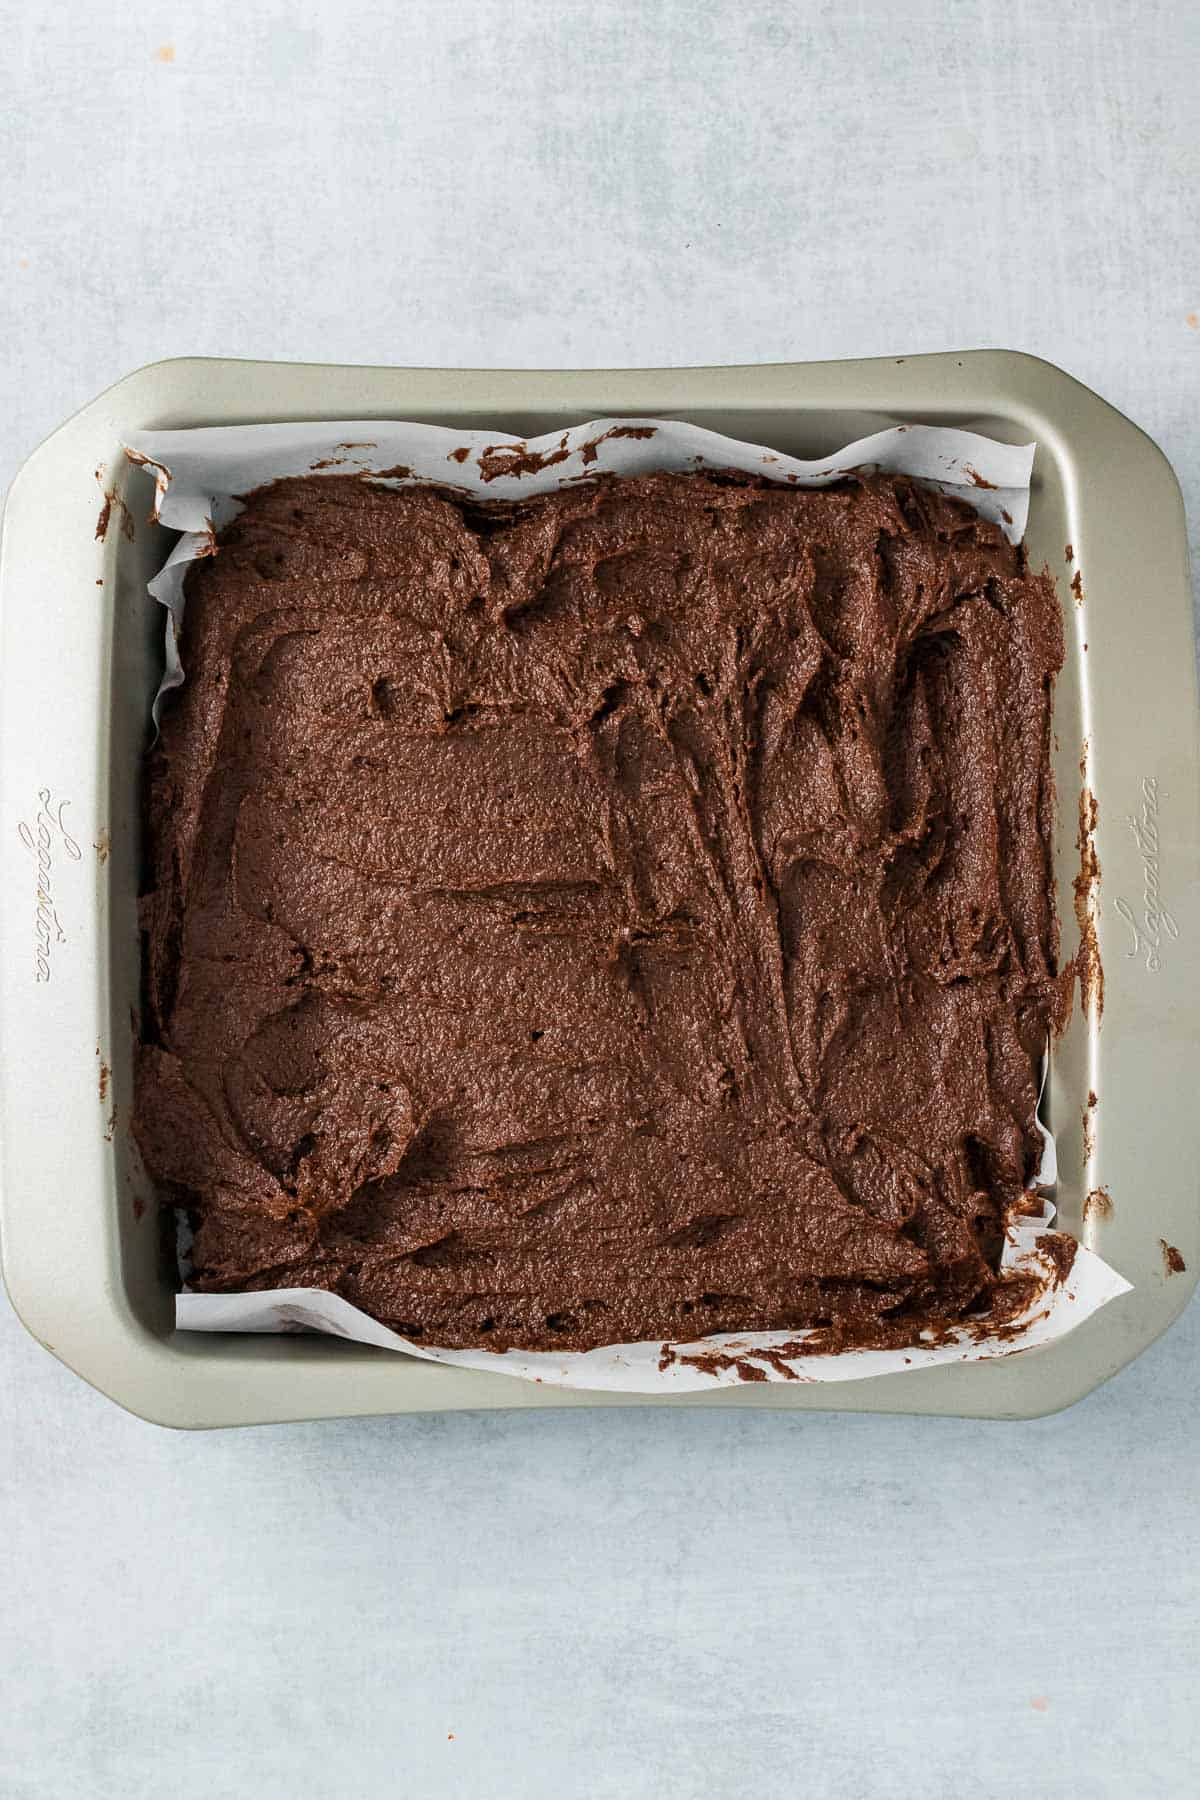 Brownie batter in a square baking dish over parchment paper, ready to bake